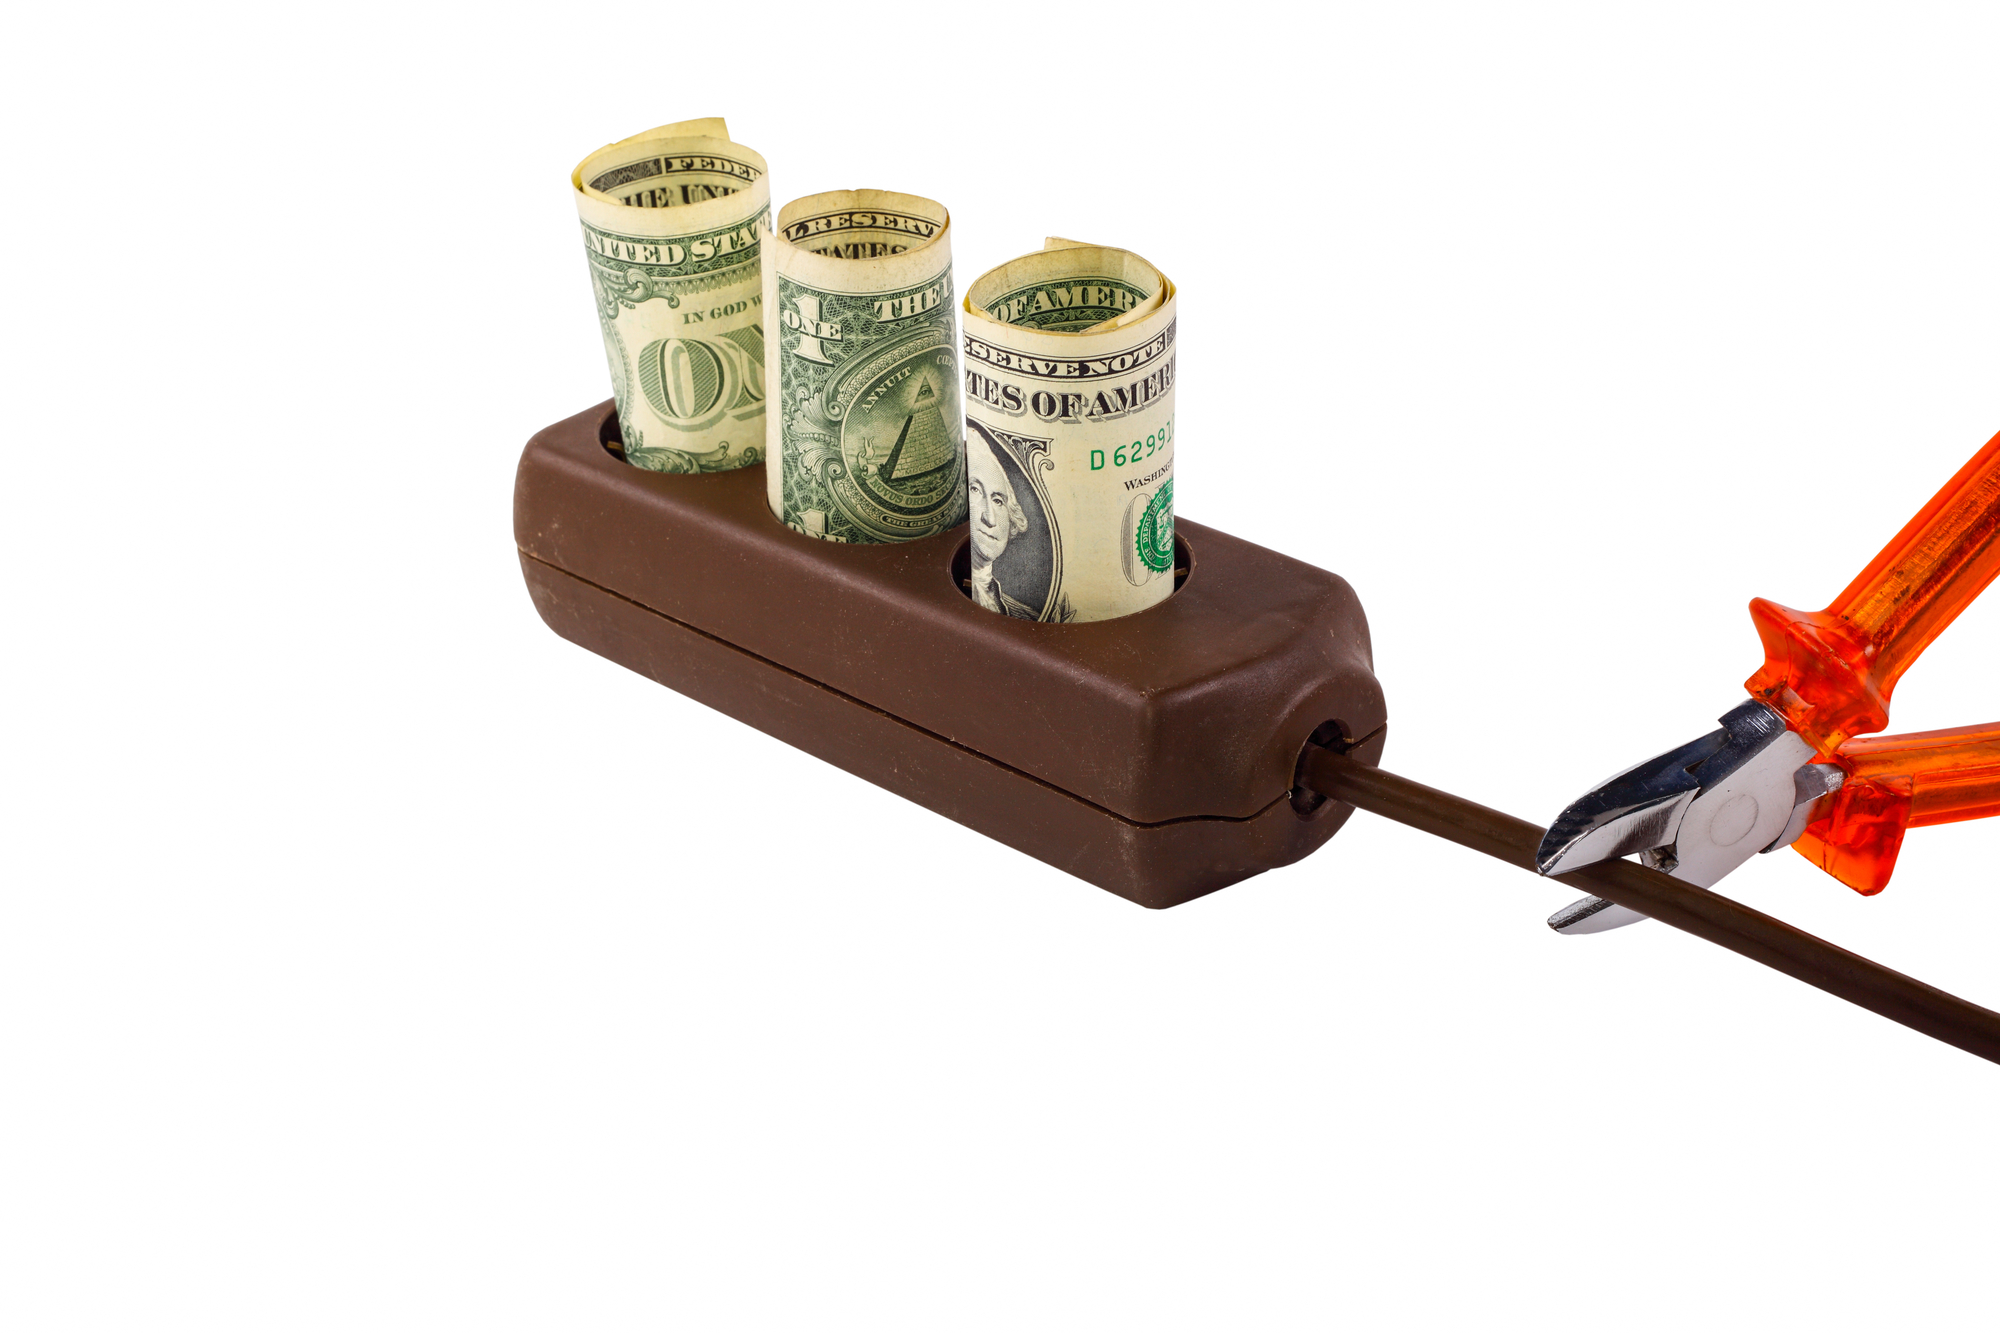 Scissors Cutting Power Cord With Money Lowering A Commercial Property's Energy Use